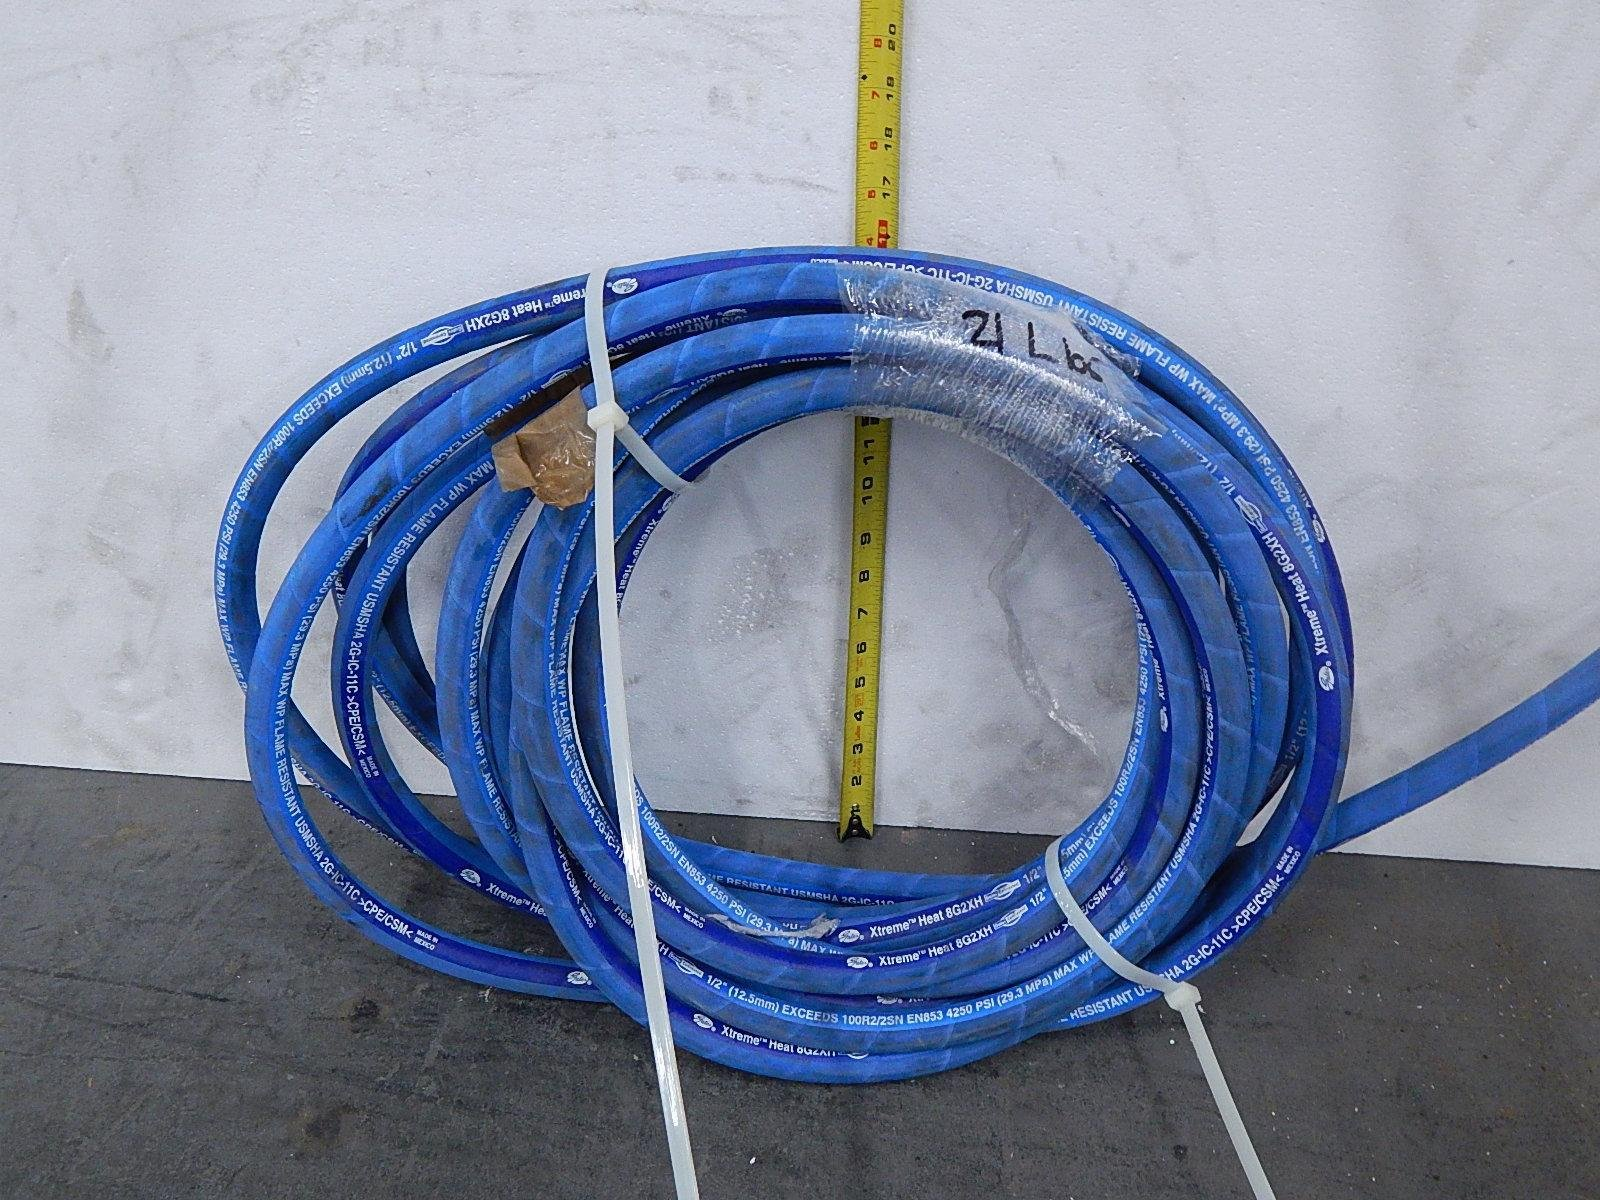 Gates 8G2XH, 100R2/2SN EN853, 2G-IC-11C 1/2 In 4250 Psi Xtreme Heat Flame Resistant Hydraulic Hose 25 Ft T103829